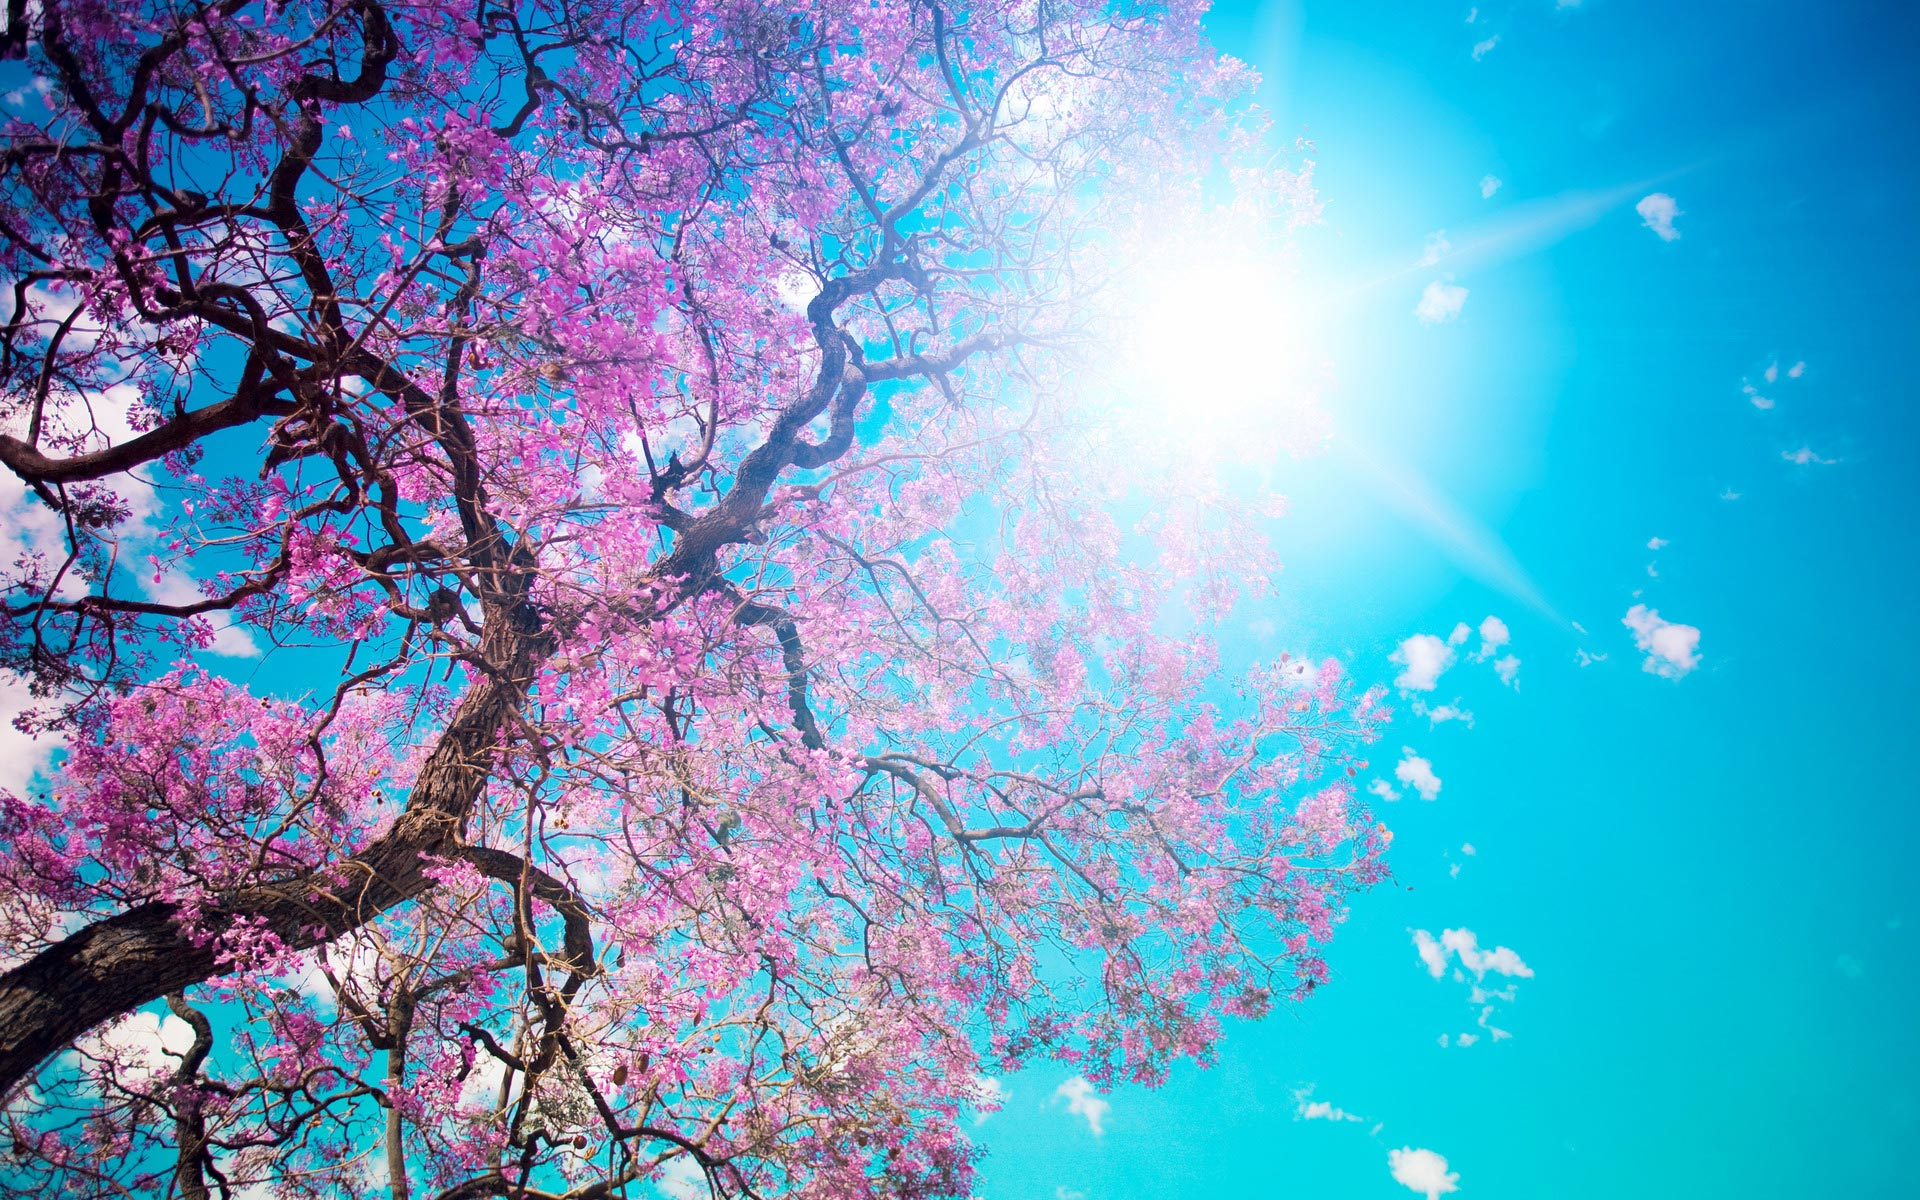 Blooming Spring Facebook Covers Wallpapers HD 1920x1200